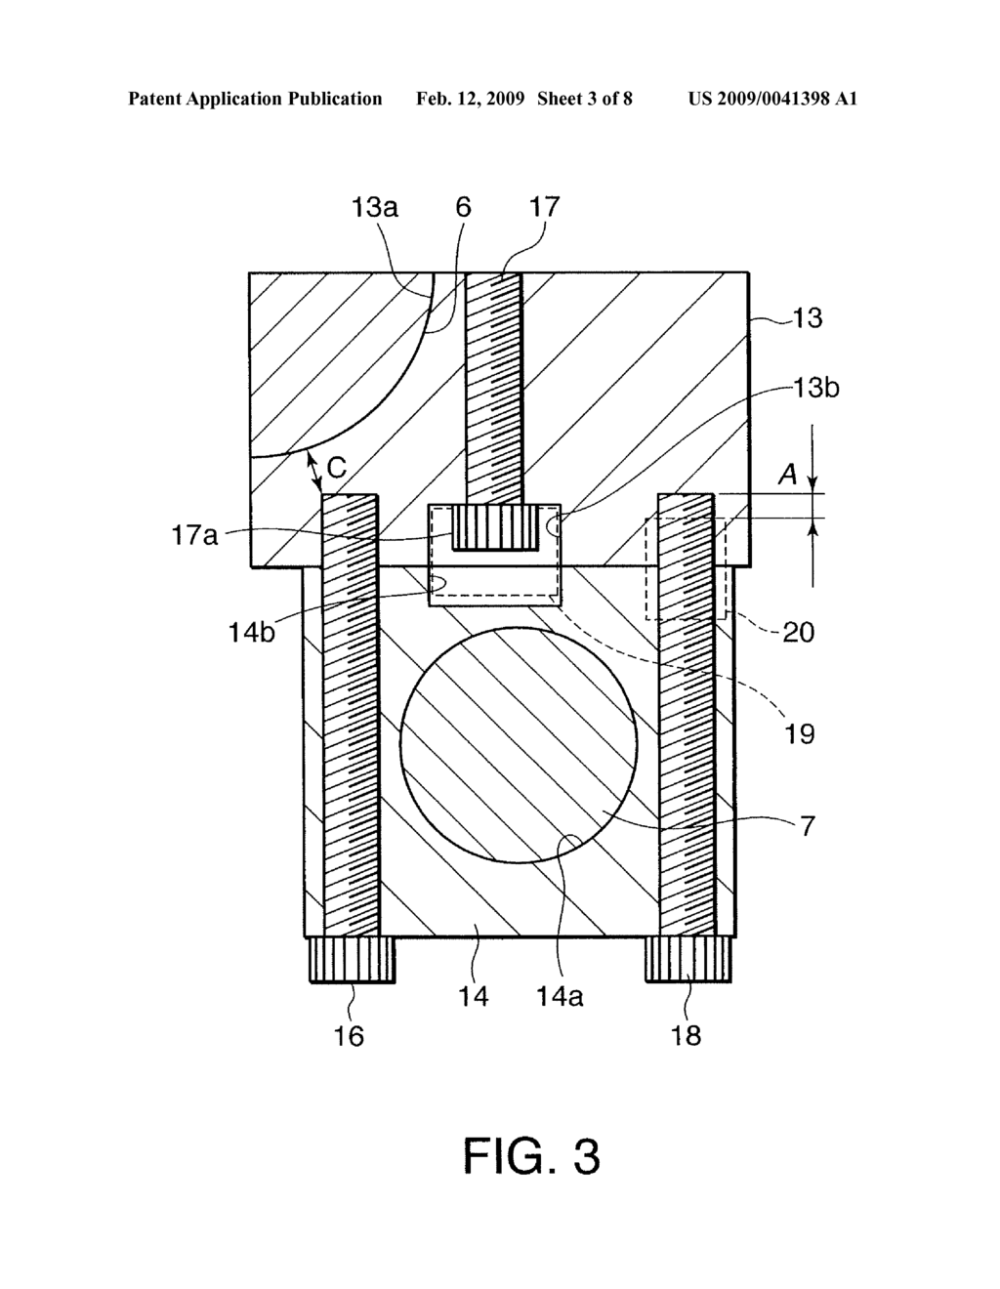 medium resolution of bearing structure for variable compression ratio internal combustion engine diagram schematic and image 04